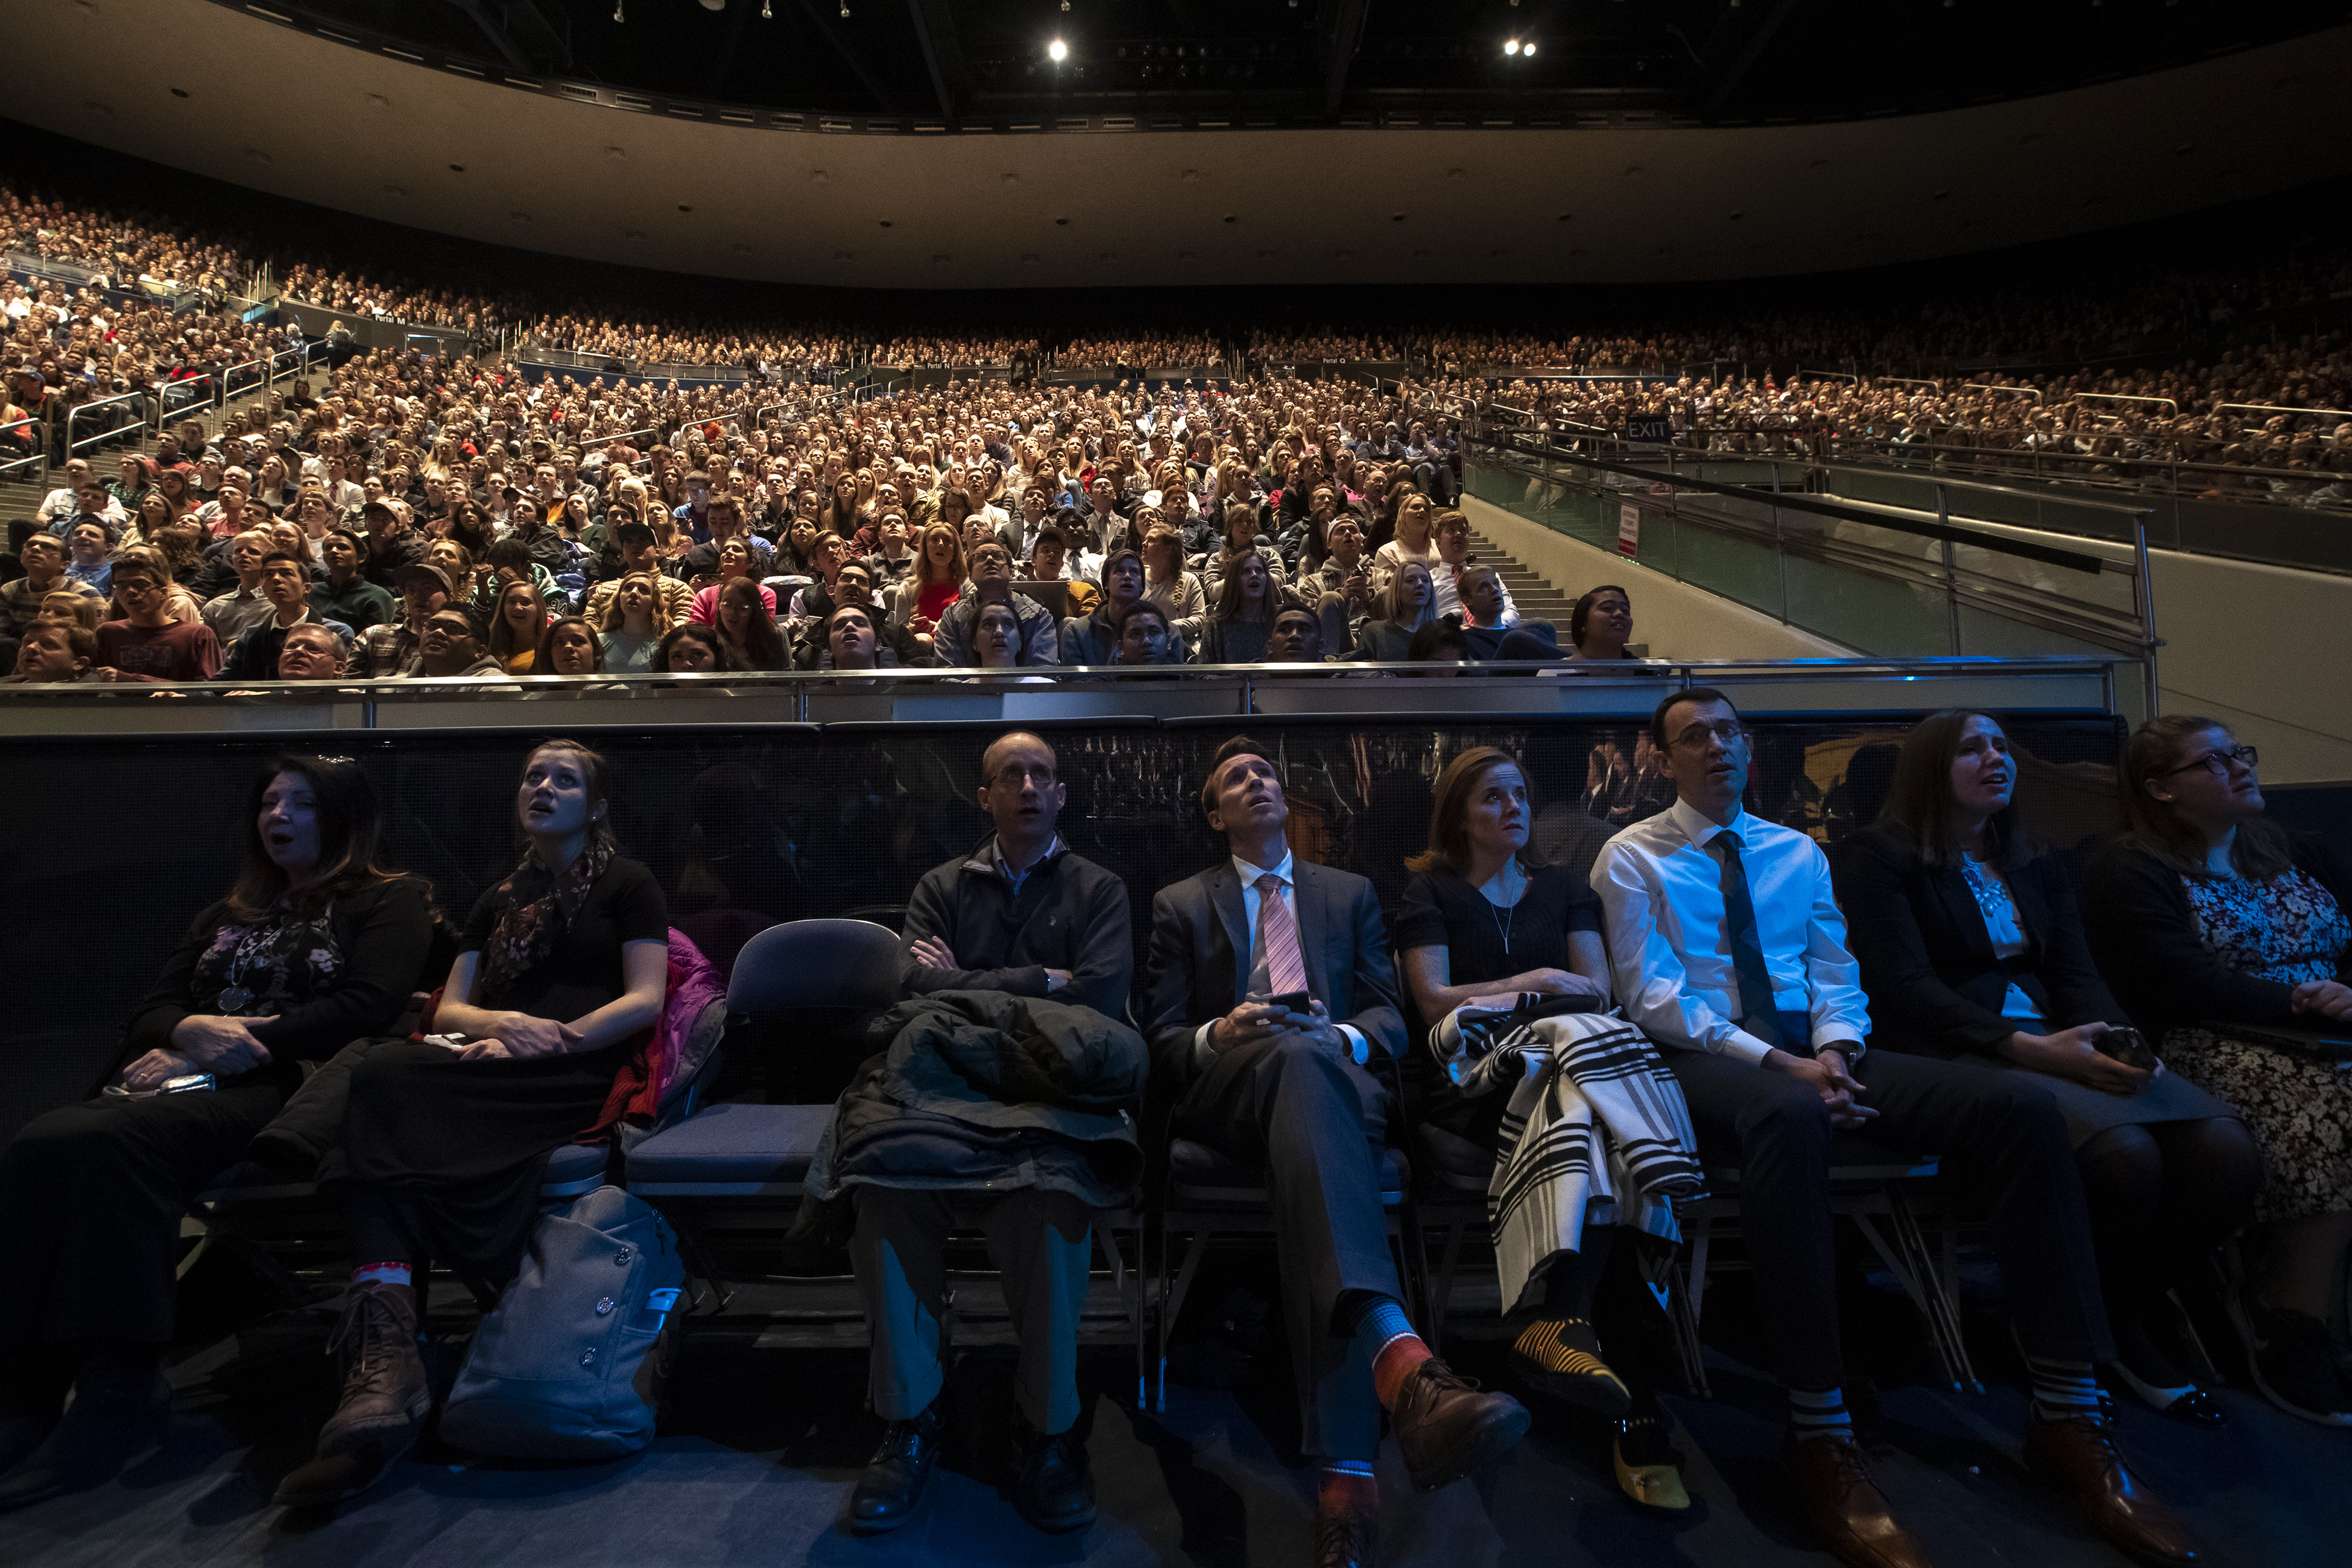 Audience members sing a closing hymn after listening to Elder David A. Bednar of the Quorum of the Twelve Apostles of The Church of Jesus Christ of Latter-day Saints speak at the campus devotional in the Marriott Center at BYU in Provo on Tuesday, Dec. 4, 2018.